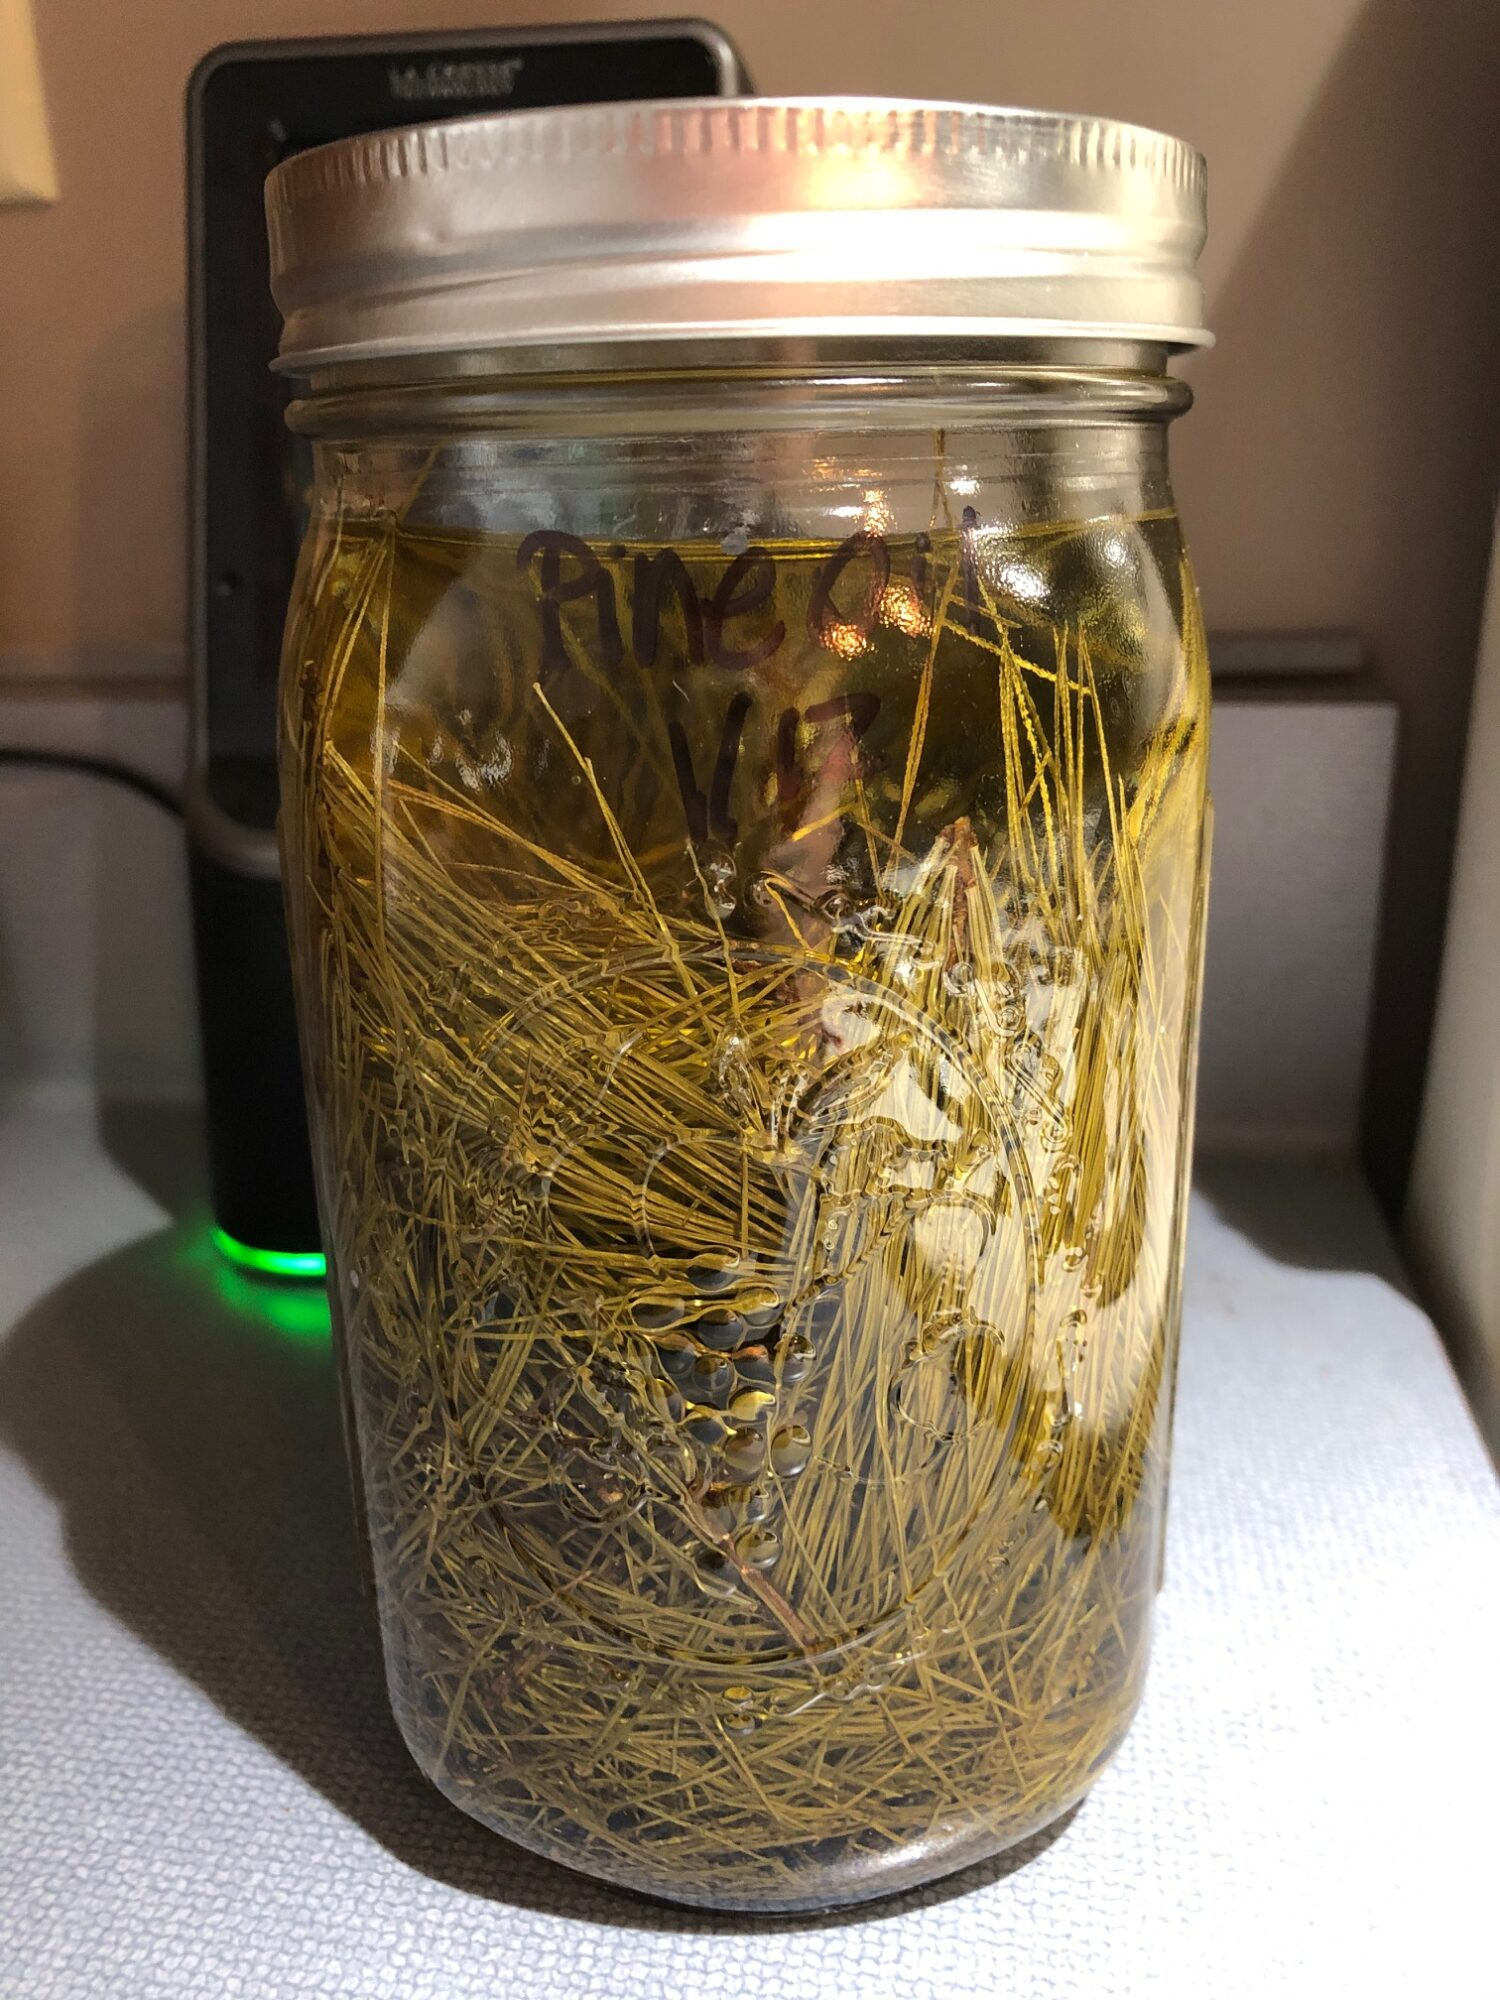 White Pine Needle Infused Oil